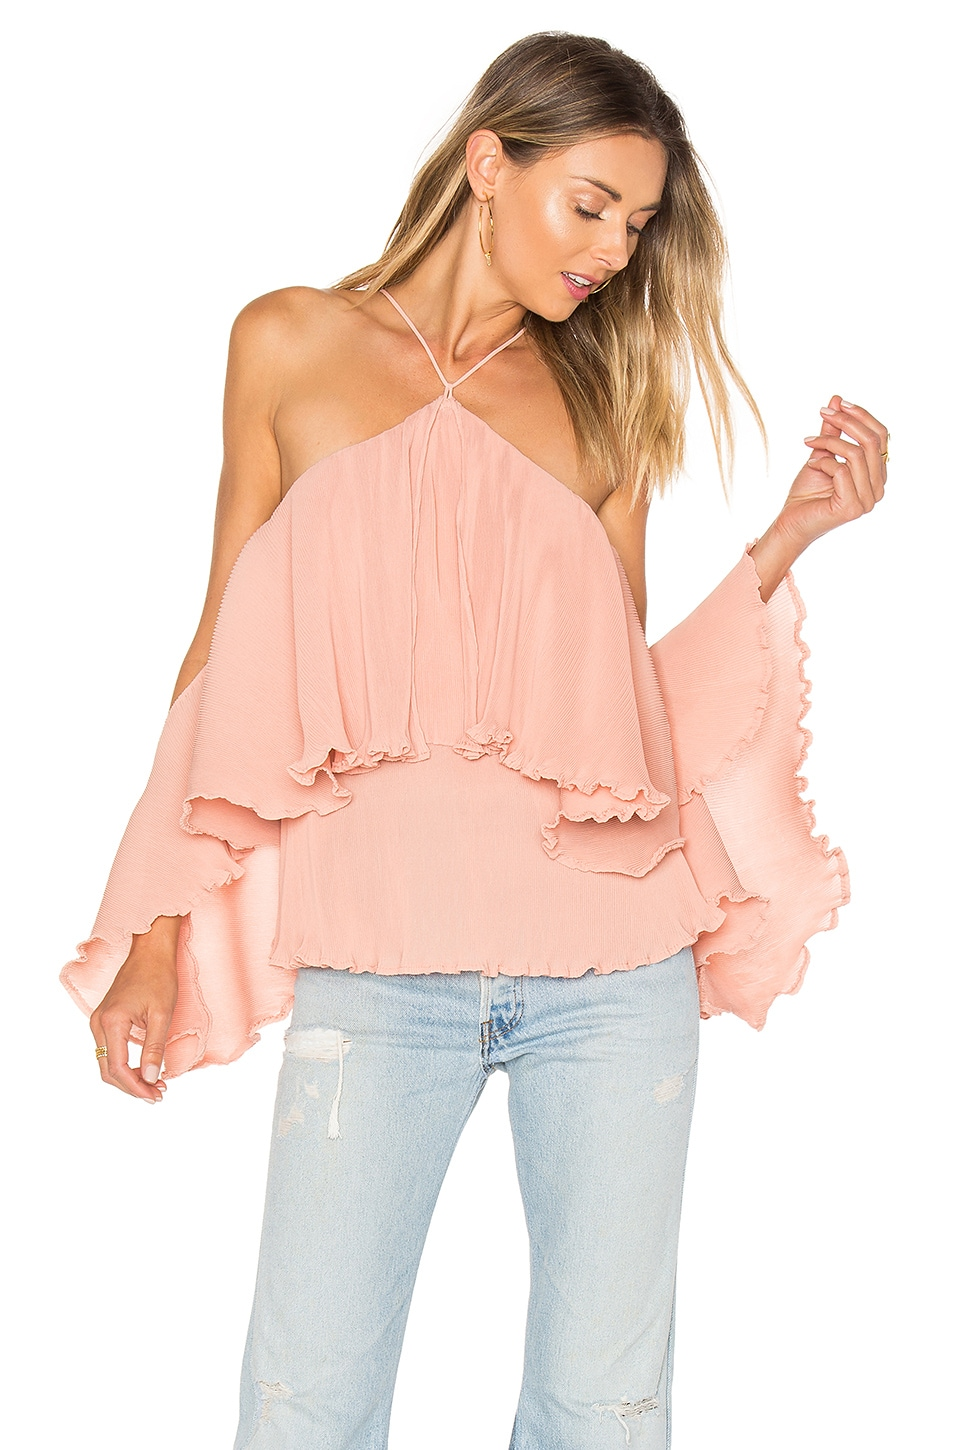 Princess Frill Top by Airlie